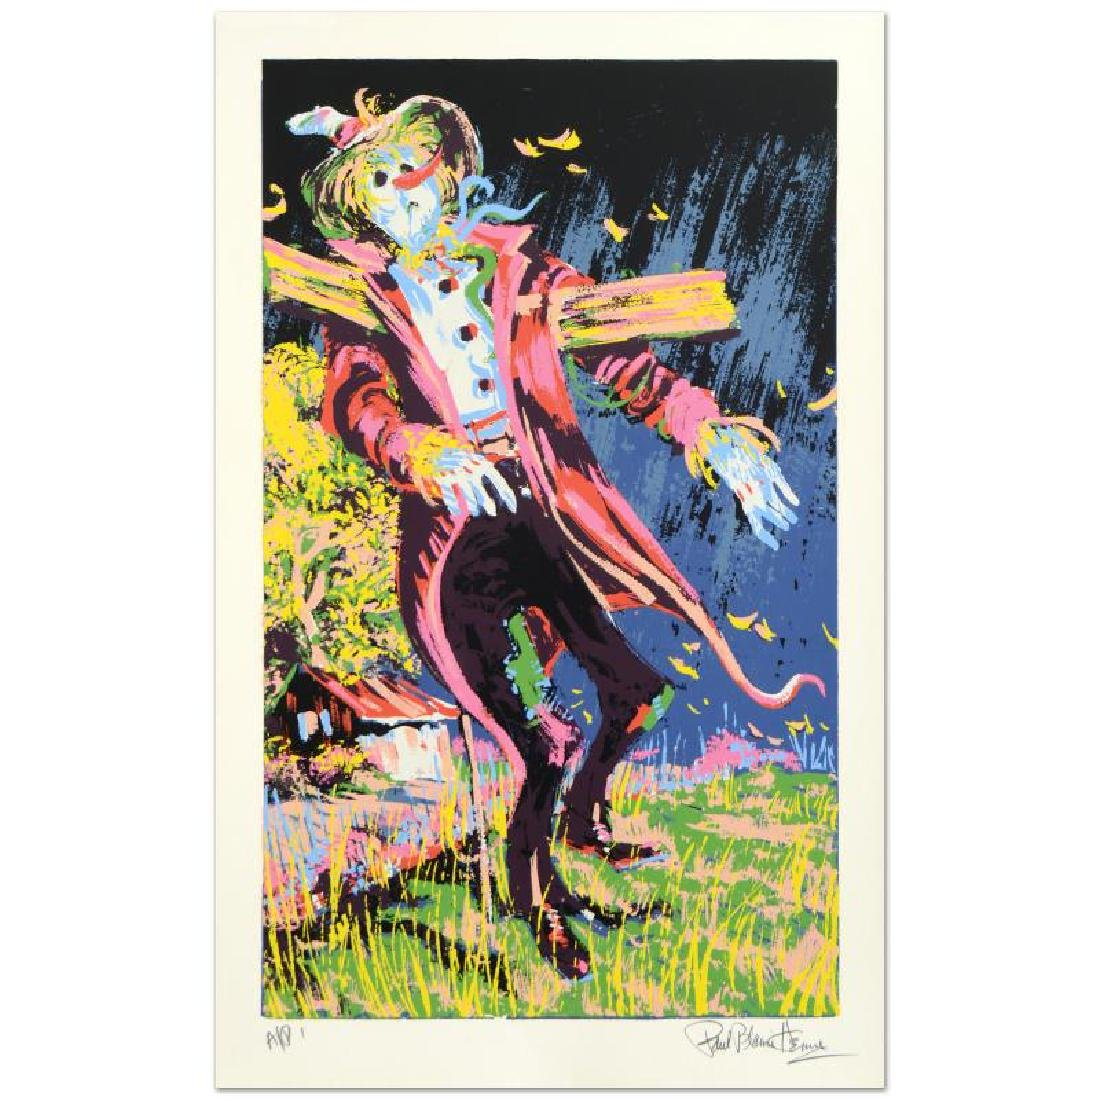 Scare Crow Limited Edition Serigraph by Paul Blaine - 3